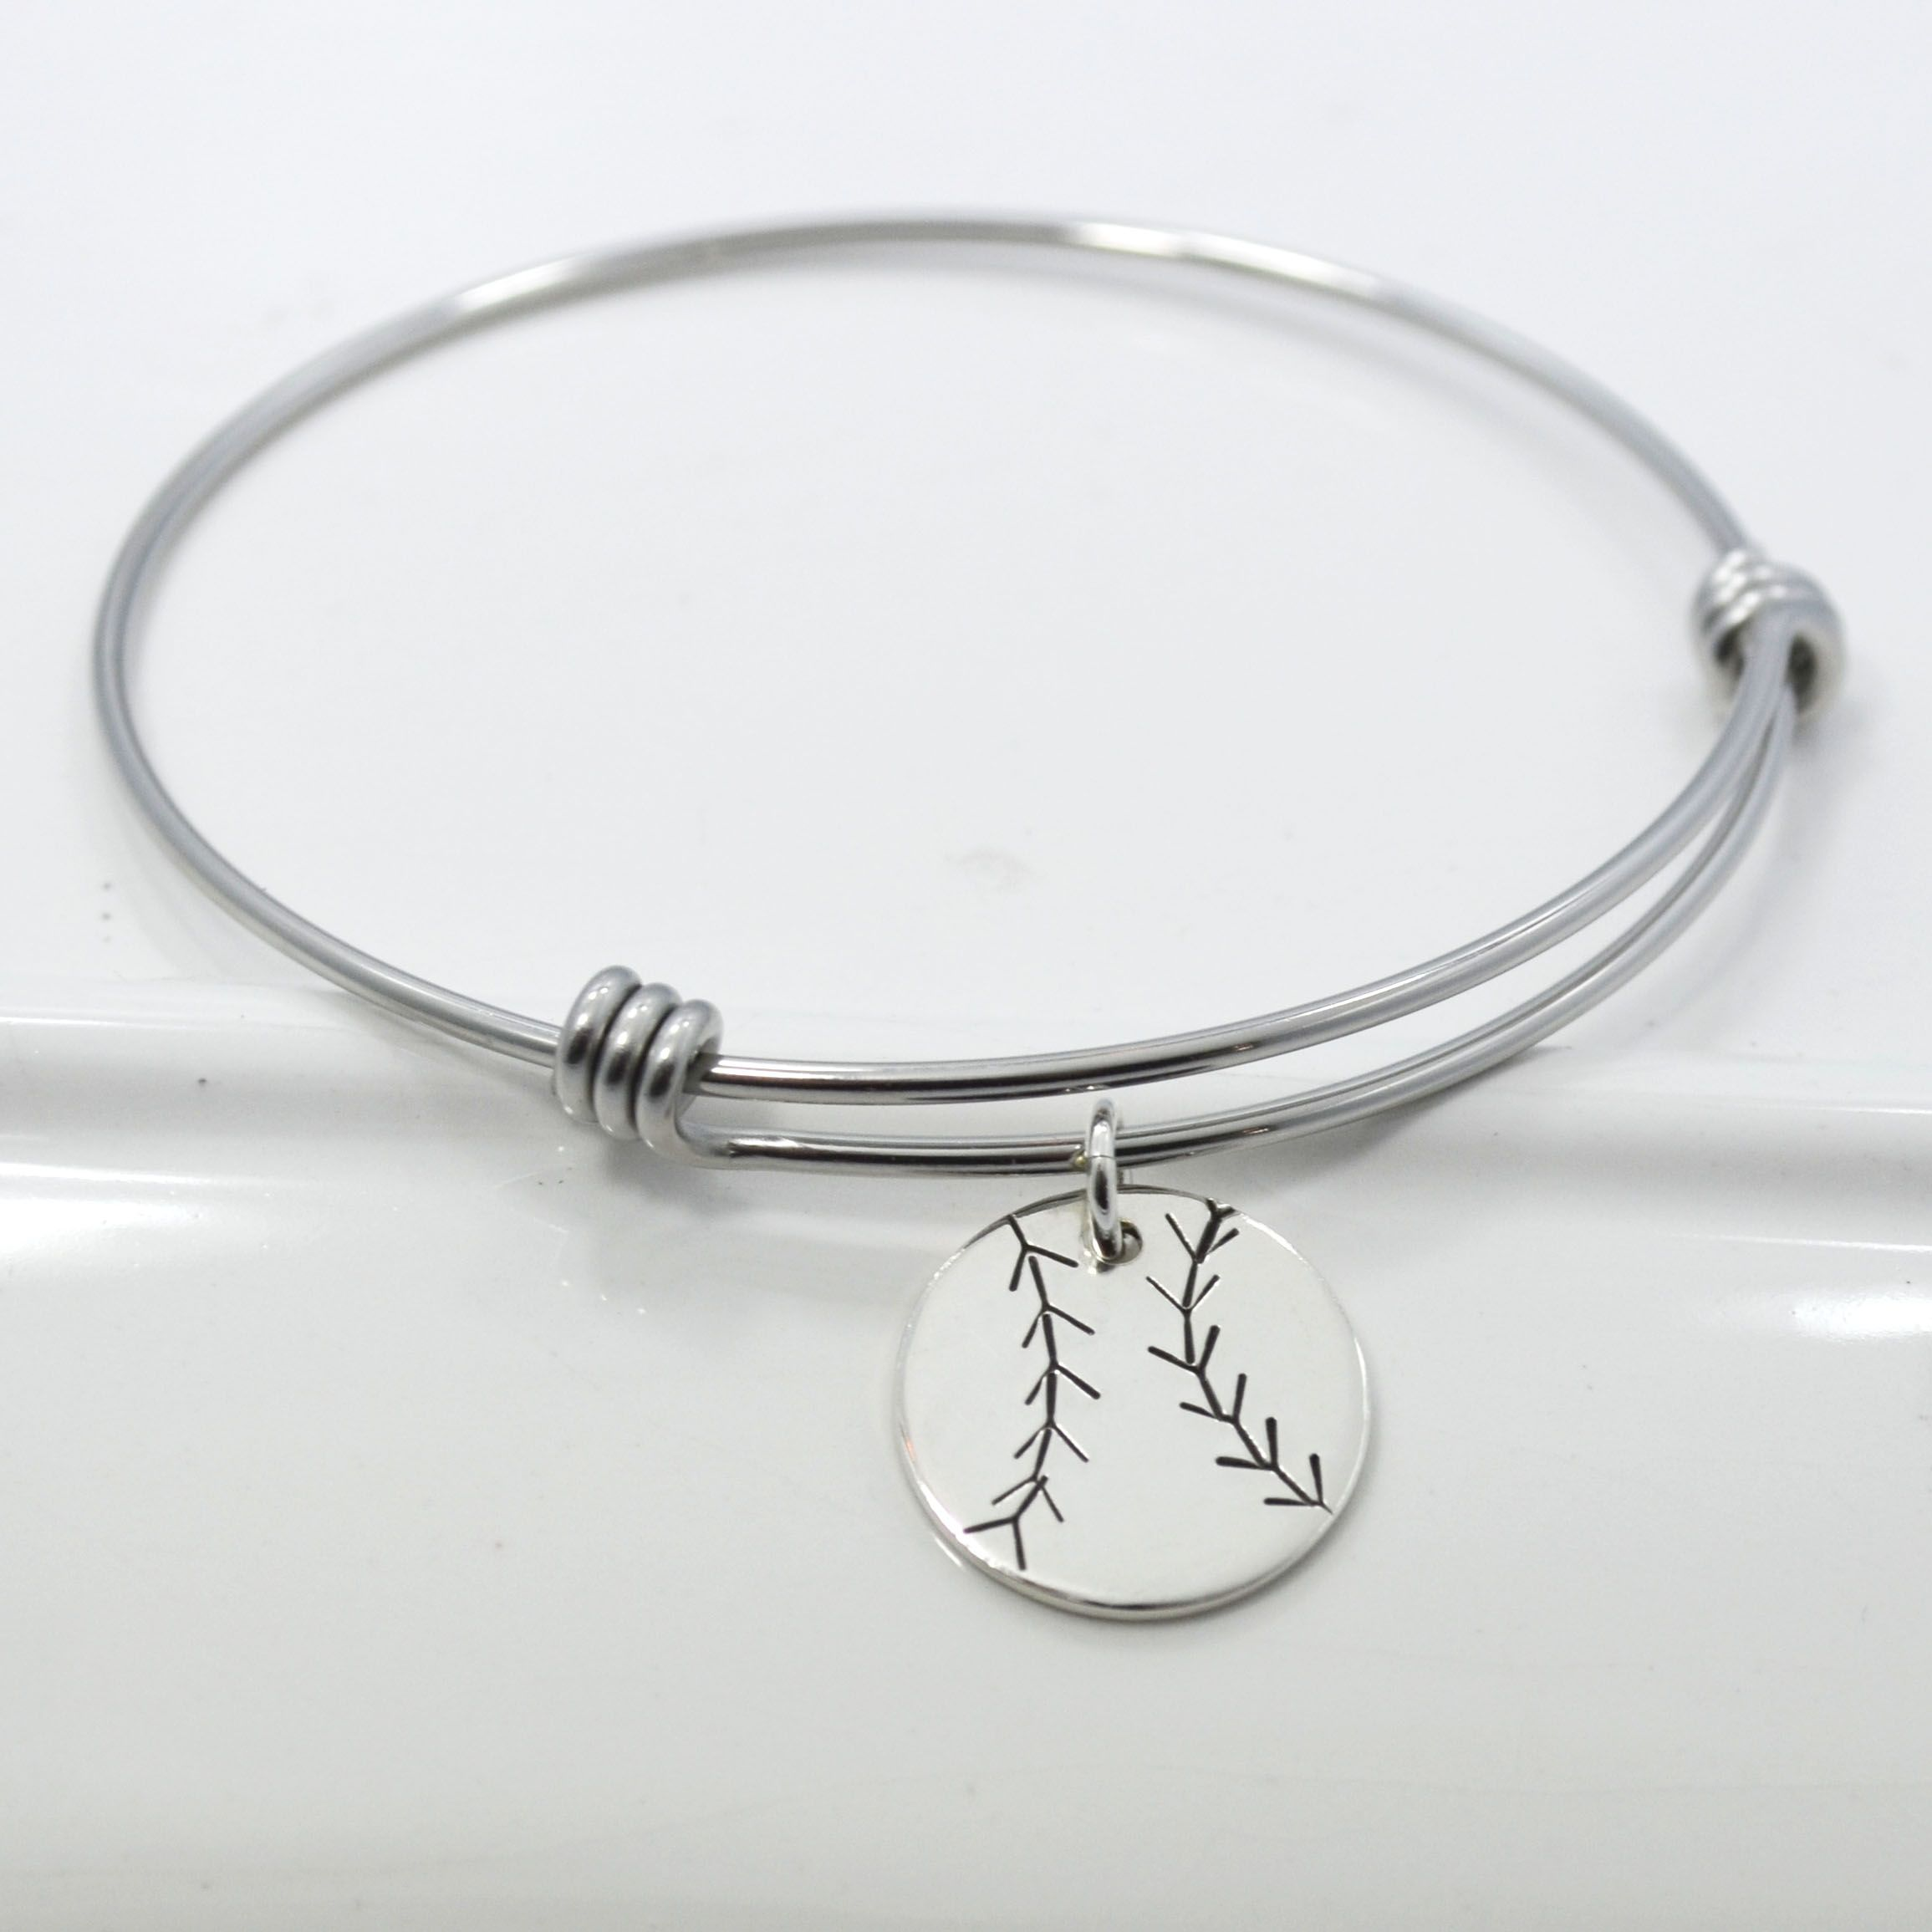 silver bracelets inside featuring occasion design filled this sterling pin bracelet features perfect small heart an a handcrafted open for bangles gold bangle any